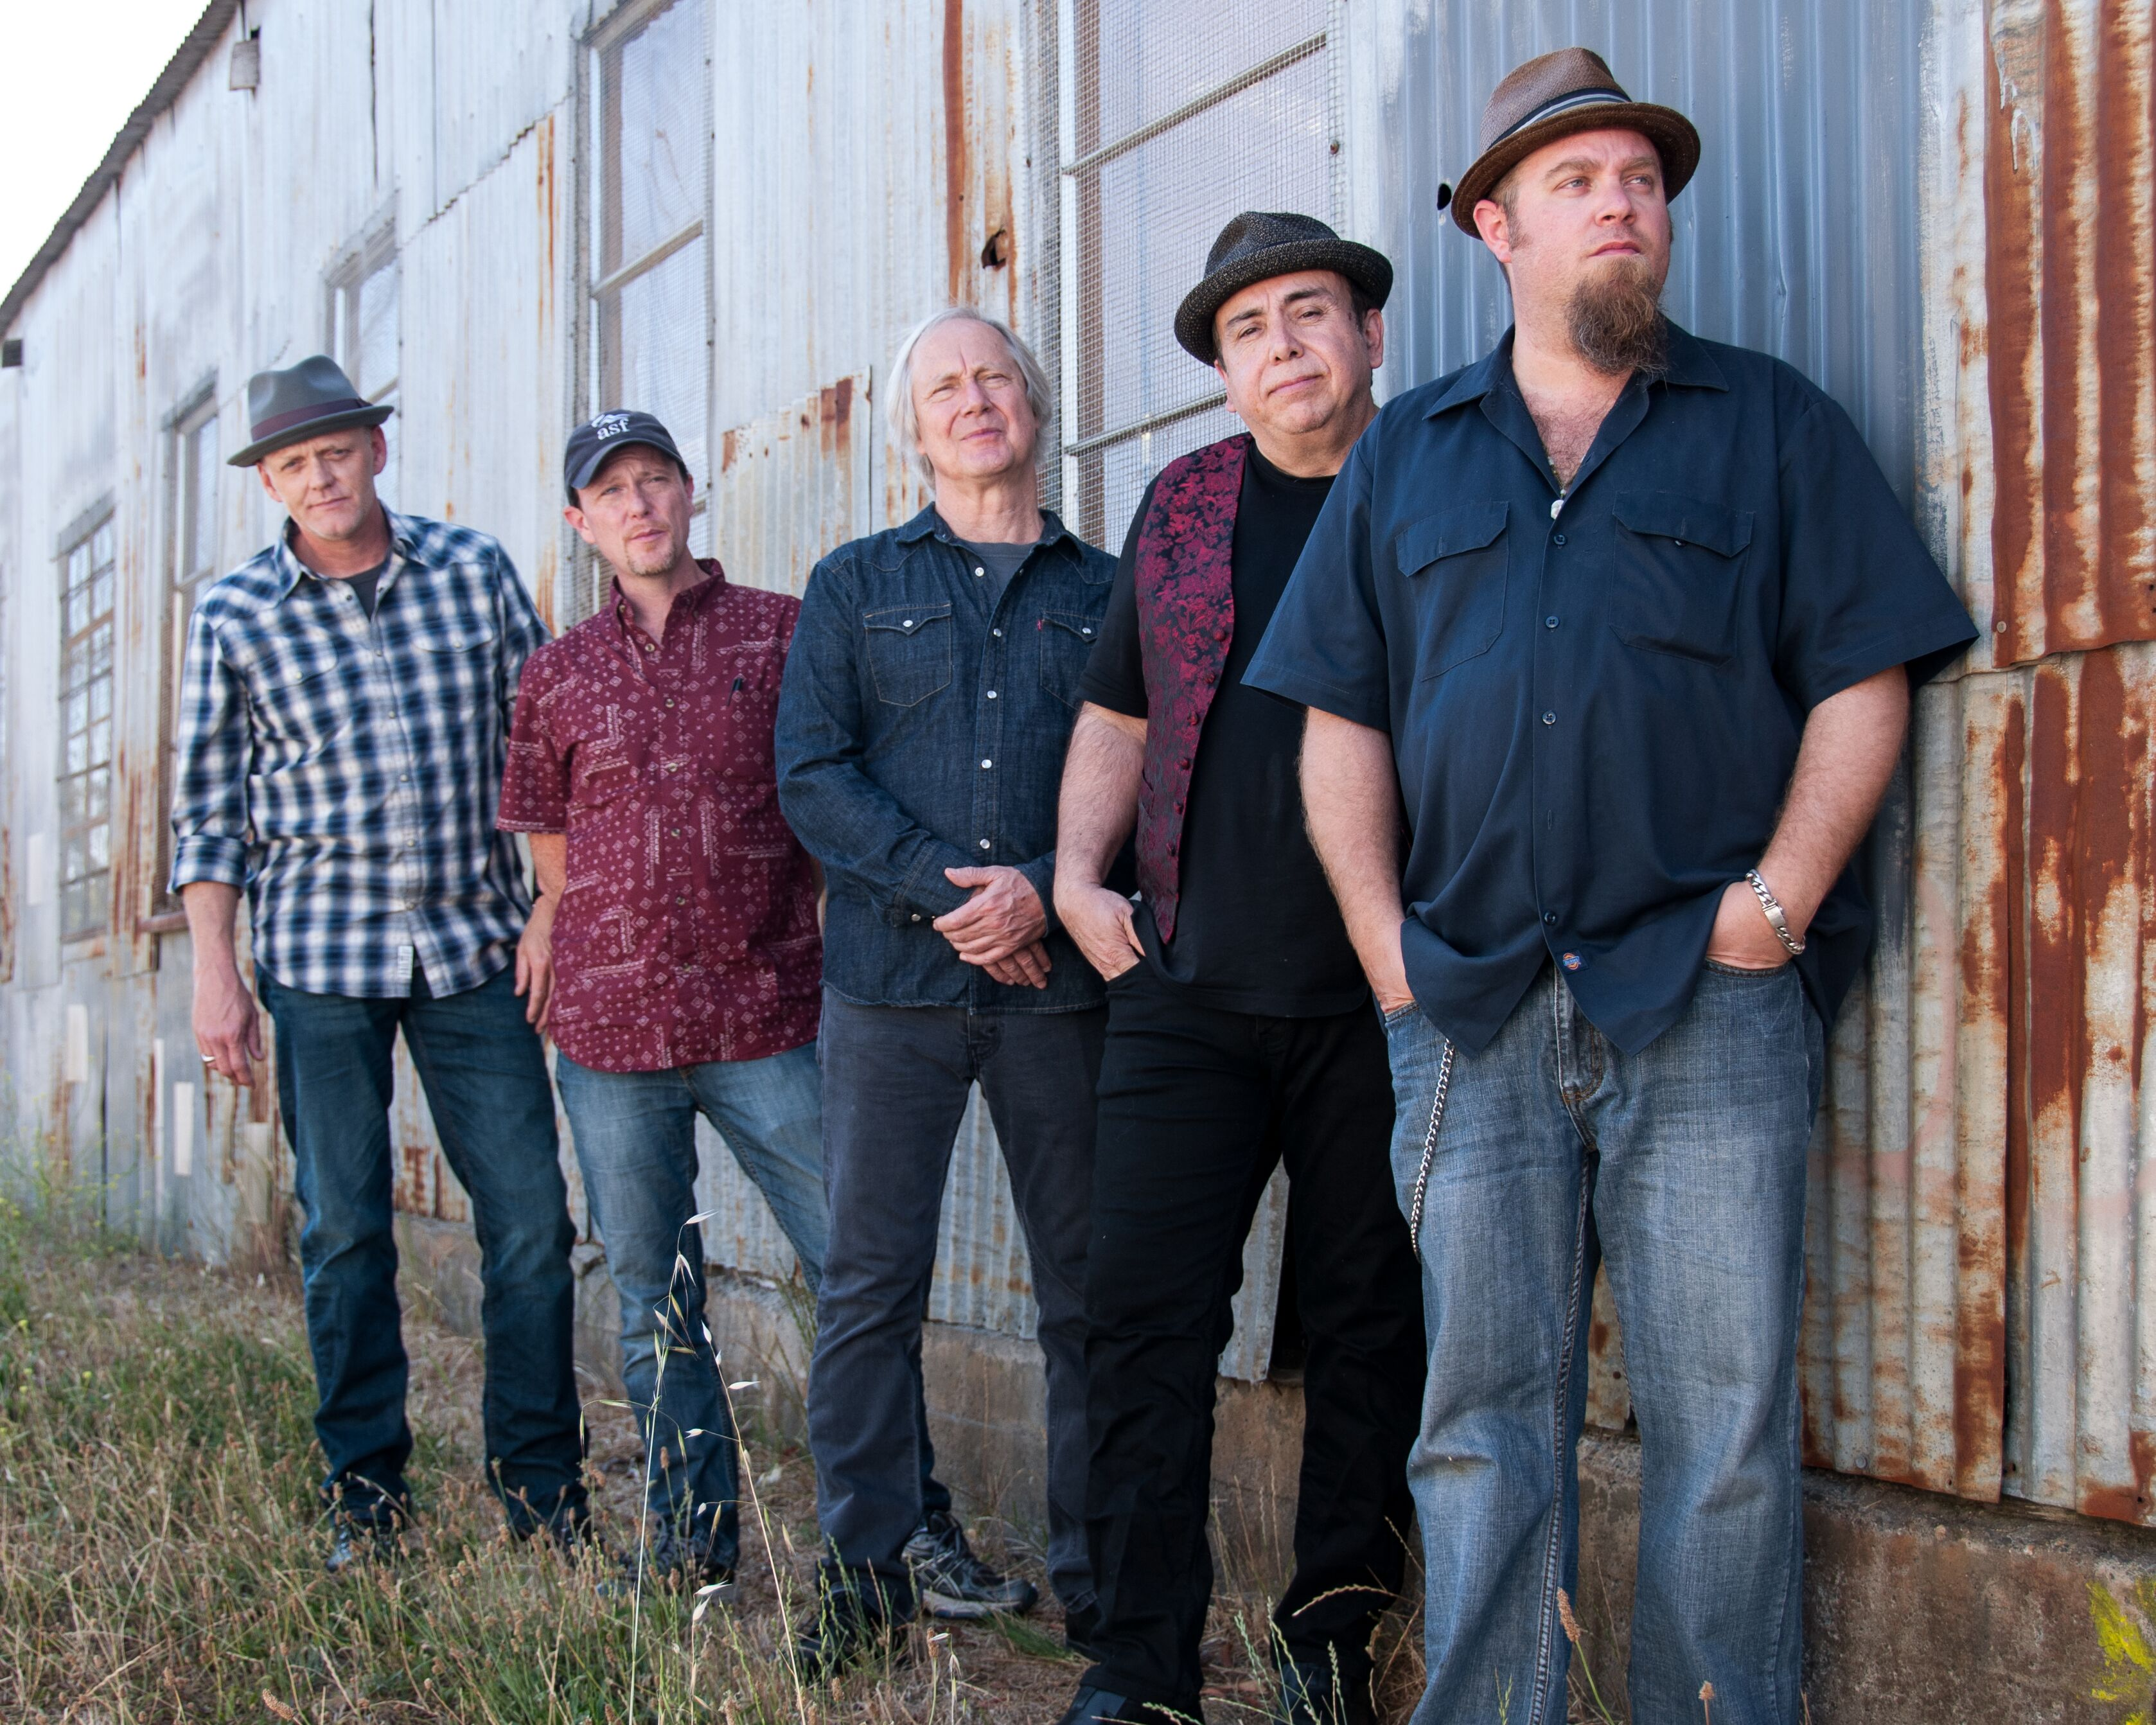 The Weight Band (feat. members of The Band & the Levon Helm Band) Performs @ Capitol Theatre, Friday December 20th